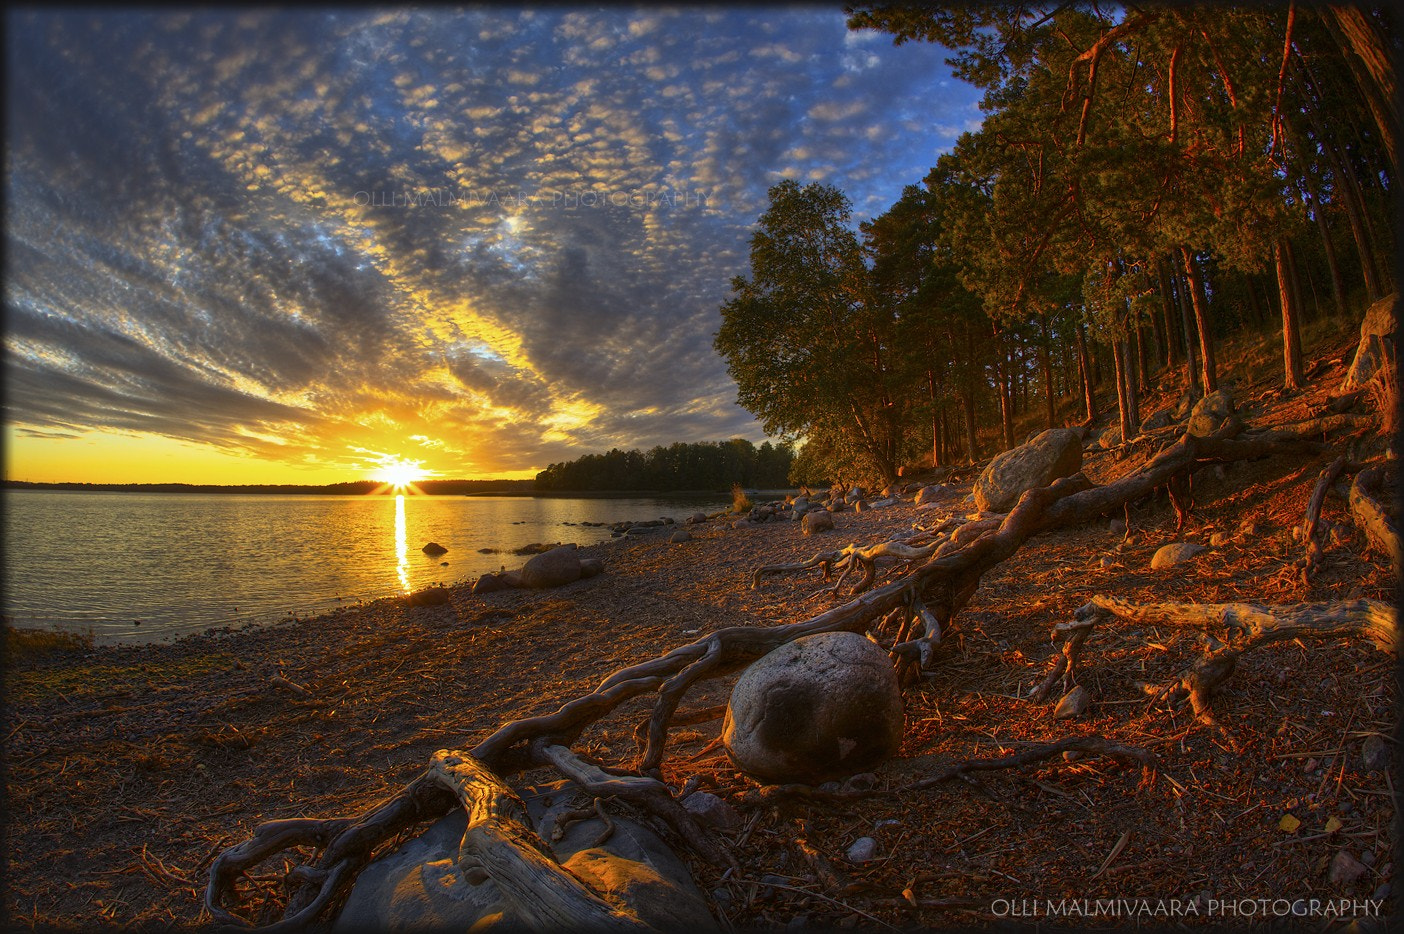 Photograph I sat down and watched by Olli Malmivaara on 500px